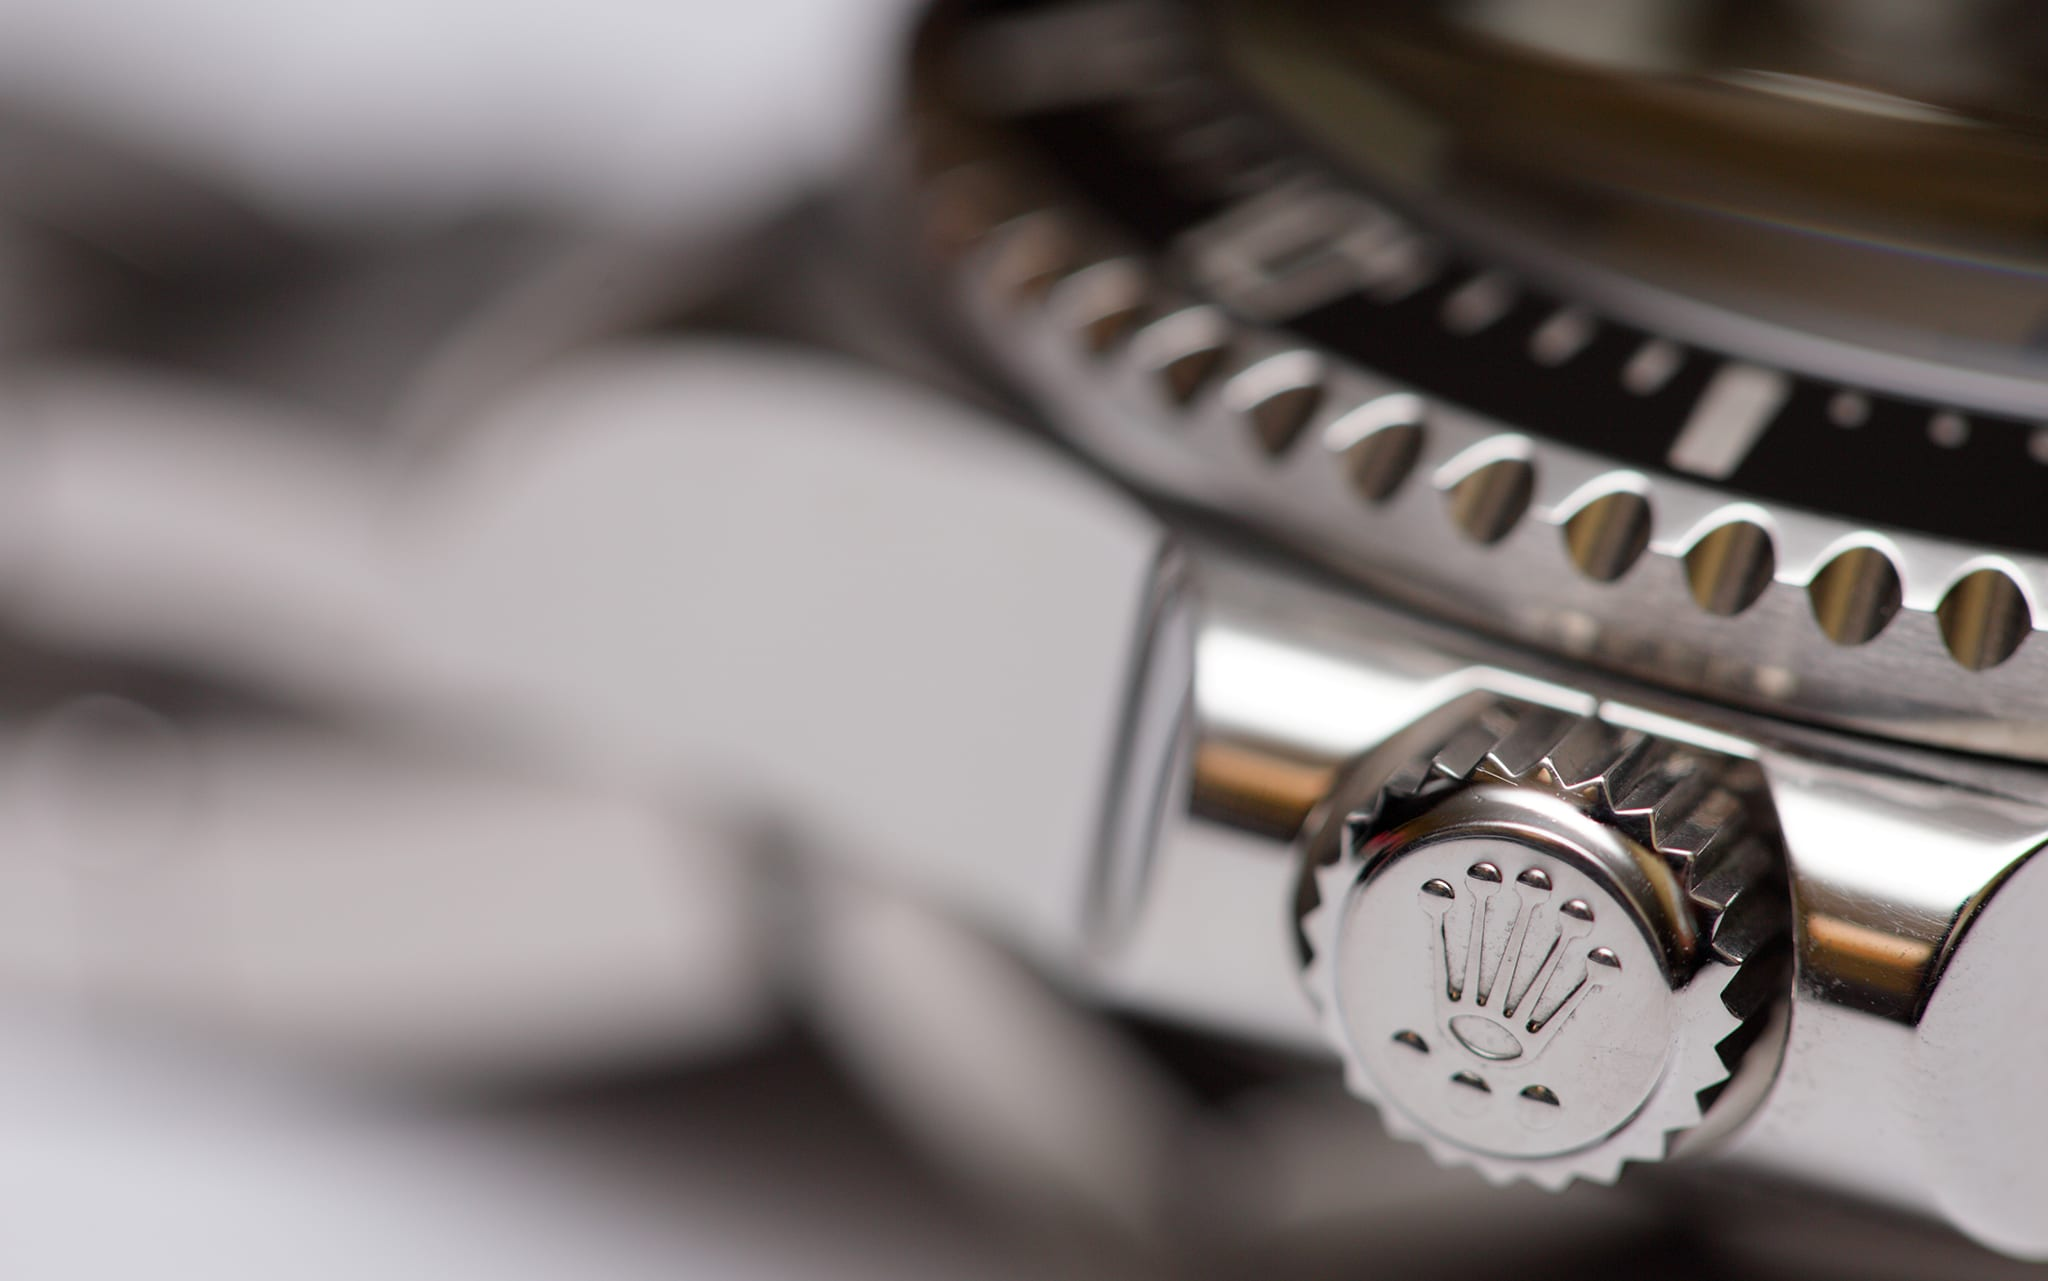 Hallandale, USA - May 16, 2014: Closeup image of a Rolex Deepsea adjustment crown in the locked position.